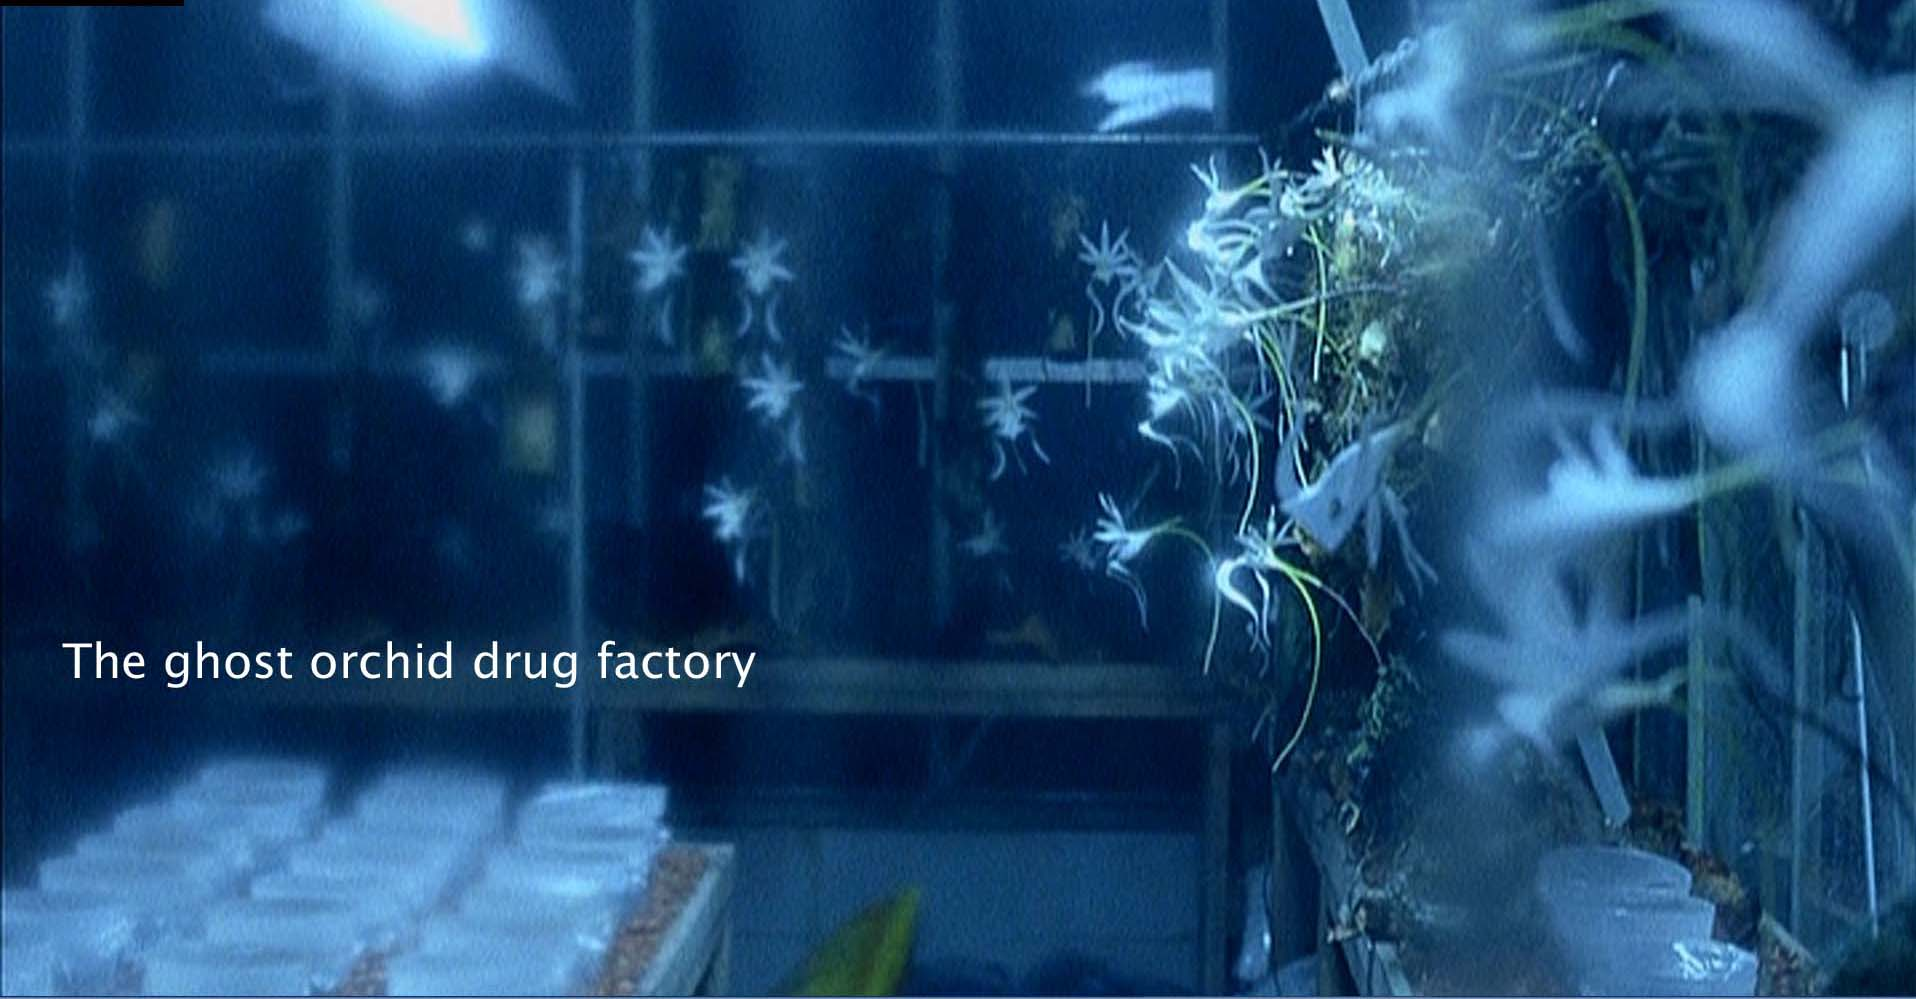 The ghost orchid drug factory